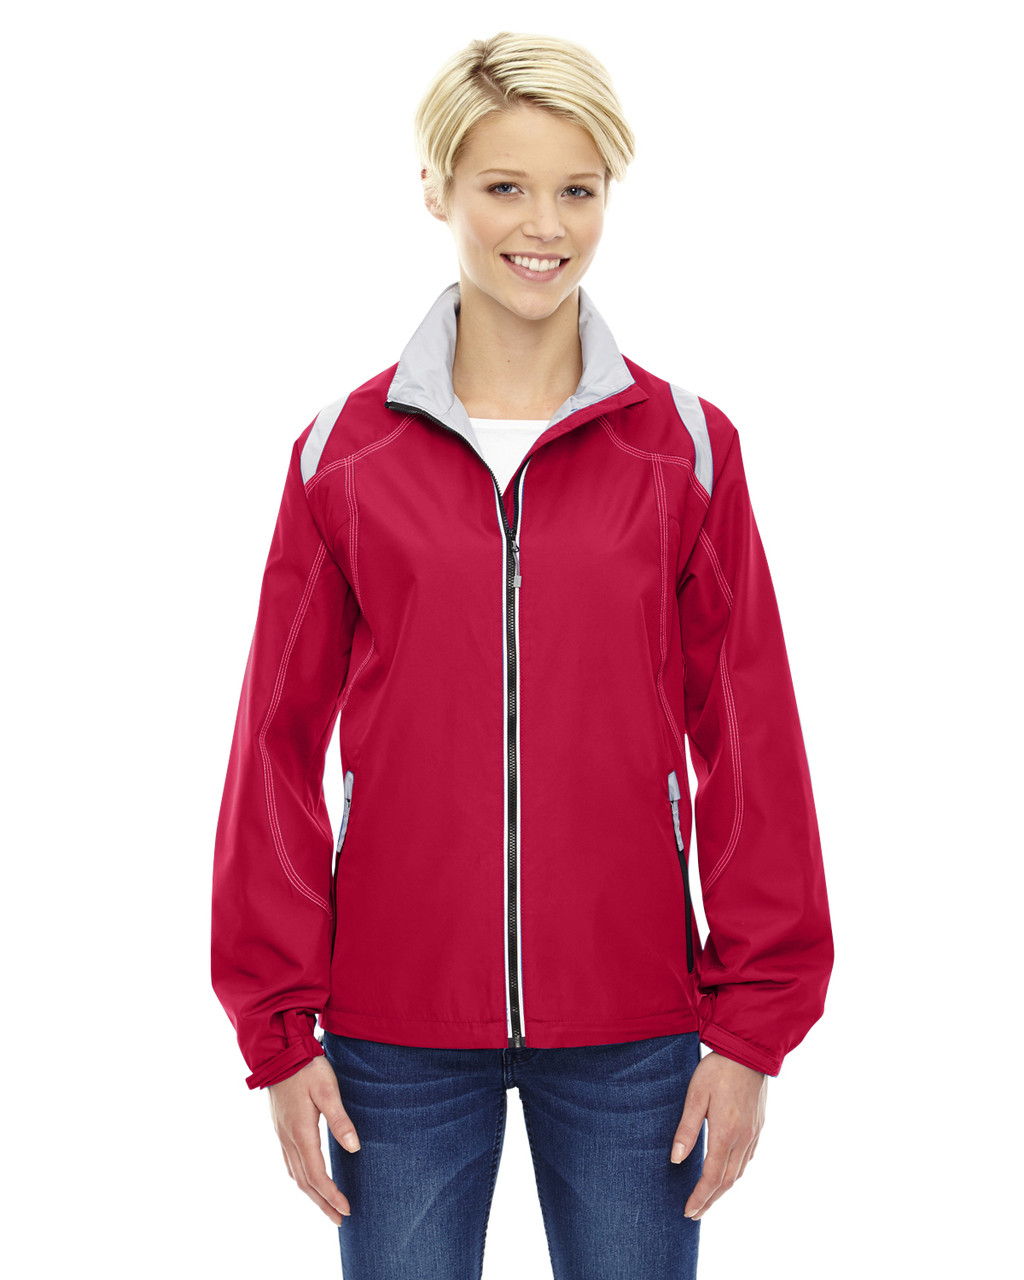 Olympic Red - 78076 North Ladies' Lightweight Colour-Block Jacket | Blankclothing.ca